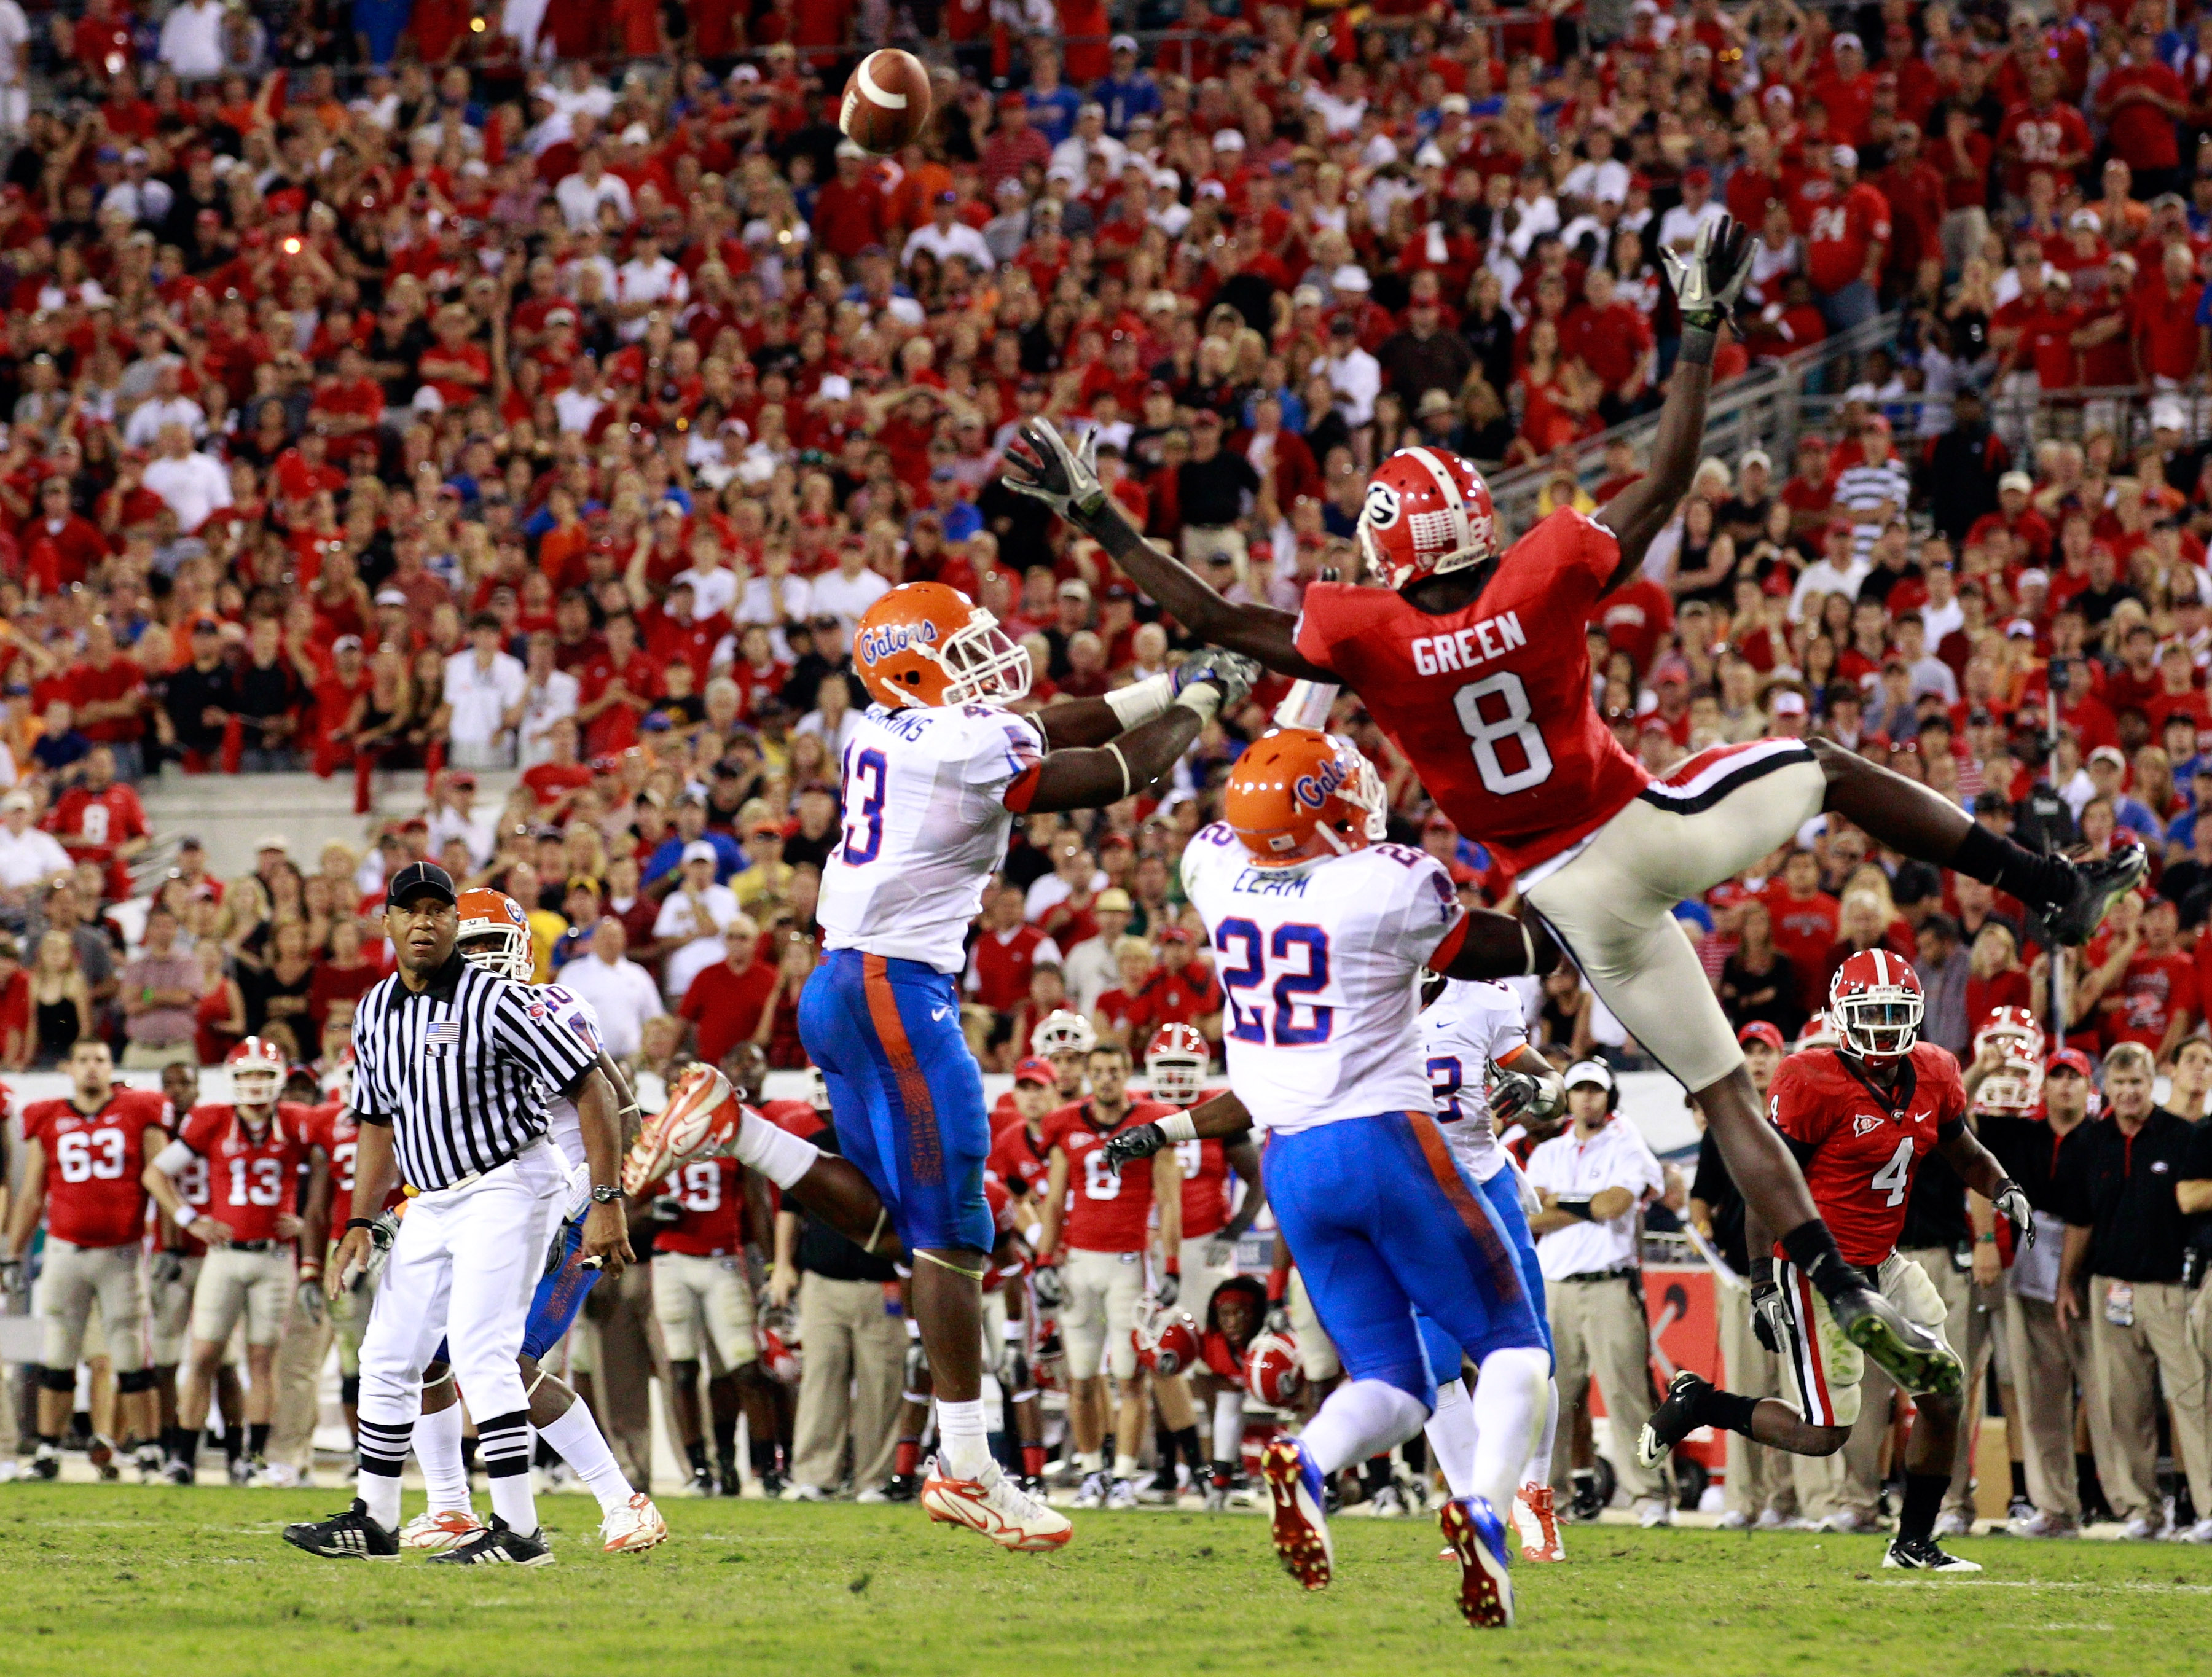 JACKSONVILLE, FL - OCTOBER 30:  A.J. Green #8 of the Georgia Bulldogs attempts to catch a pass against Jelani Jenkins #43 and Matt Elam #22 of the Florida Gators during the game at EverBank Field on October 30, 2010 in Jacksonville, Florida.  (Photo by Sa